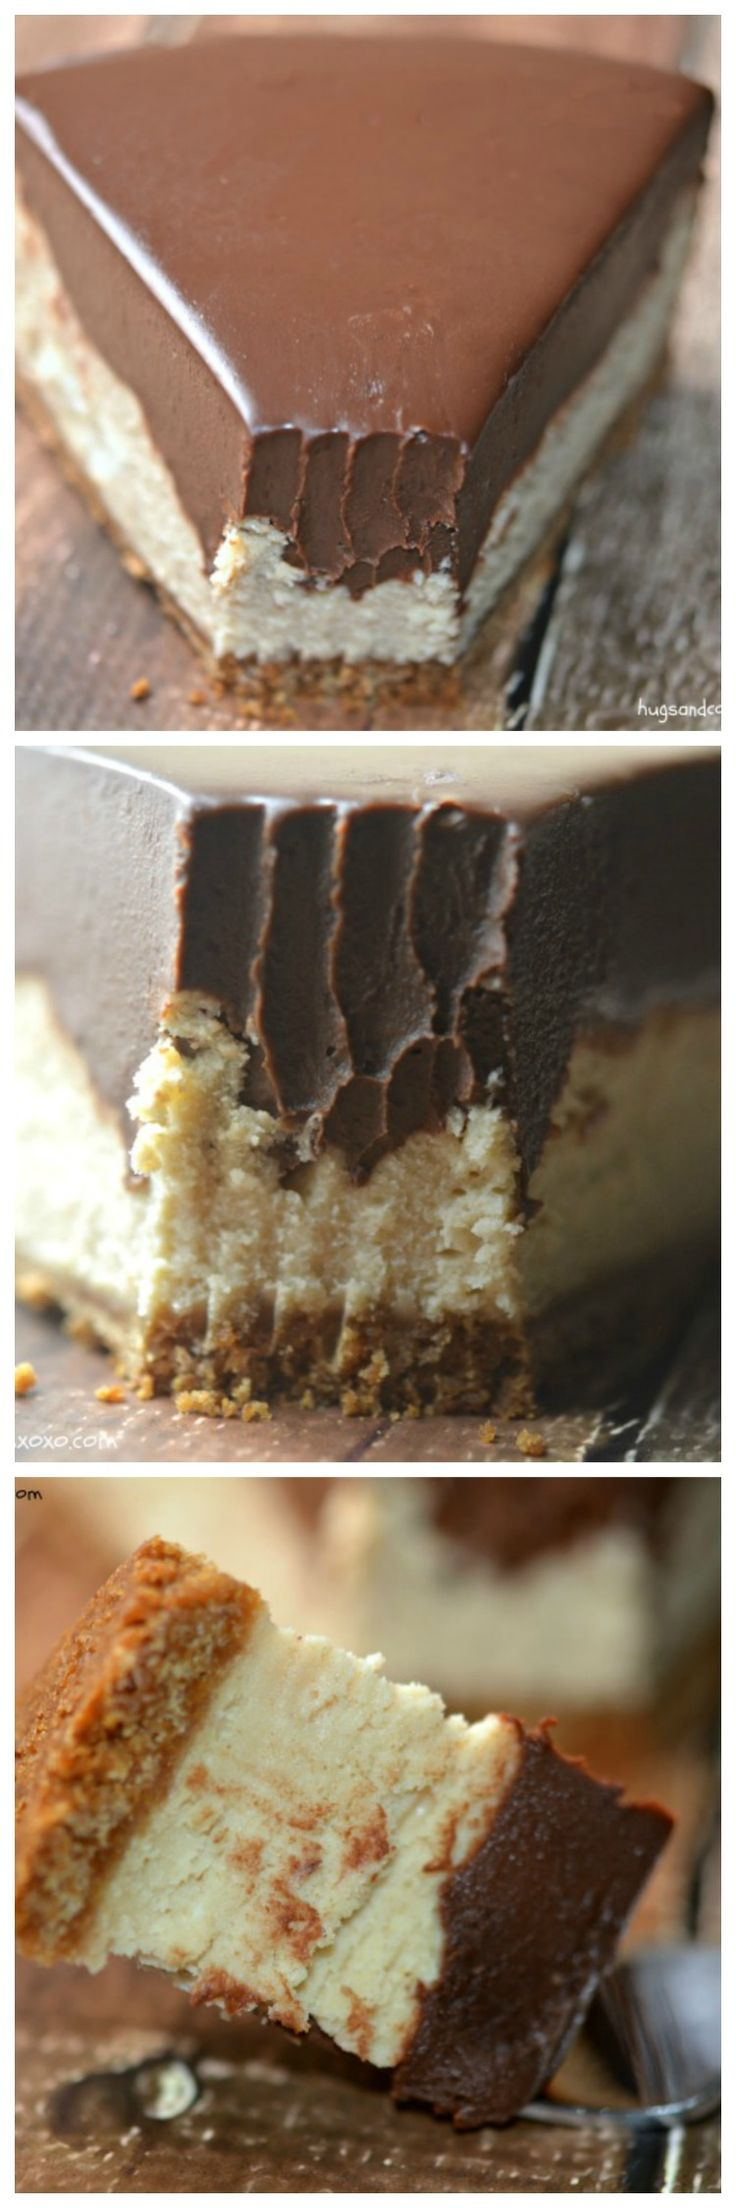 Chocolate Peanut Butter cheesecake. Ingredients: butter, graham cracker crumbs, sugar, cream cheese, sugar, salt, vanilla, eggs, sour cream, peanut butter, heavy cream, chocolate